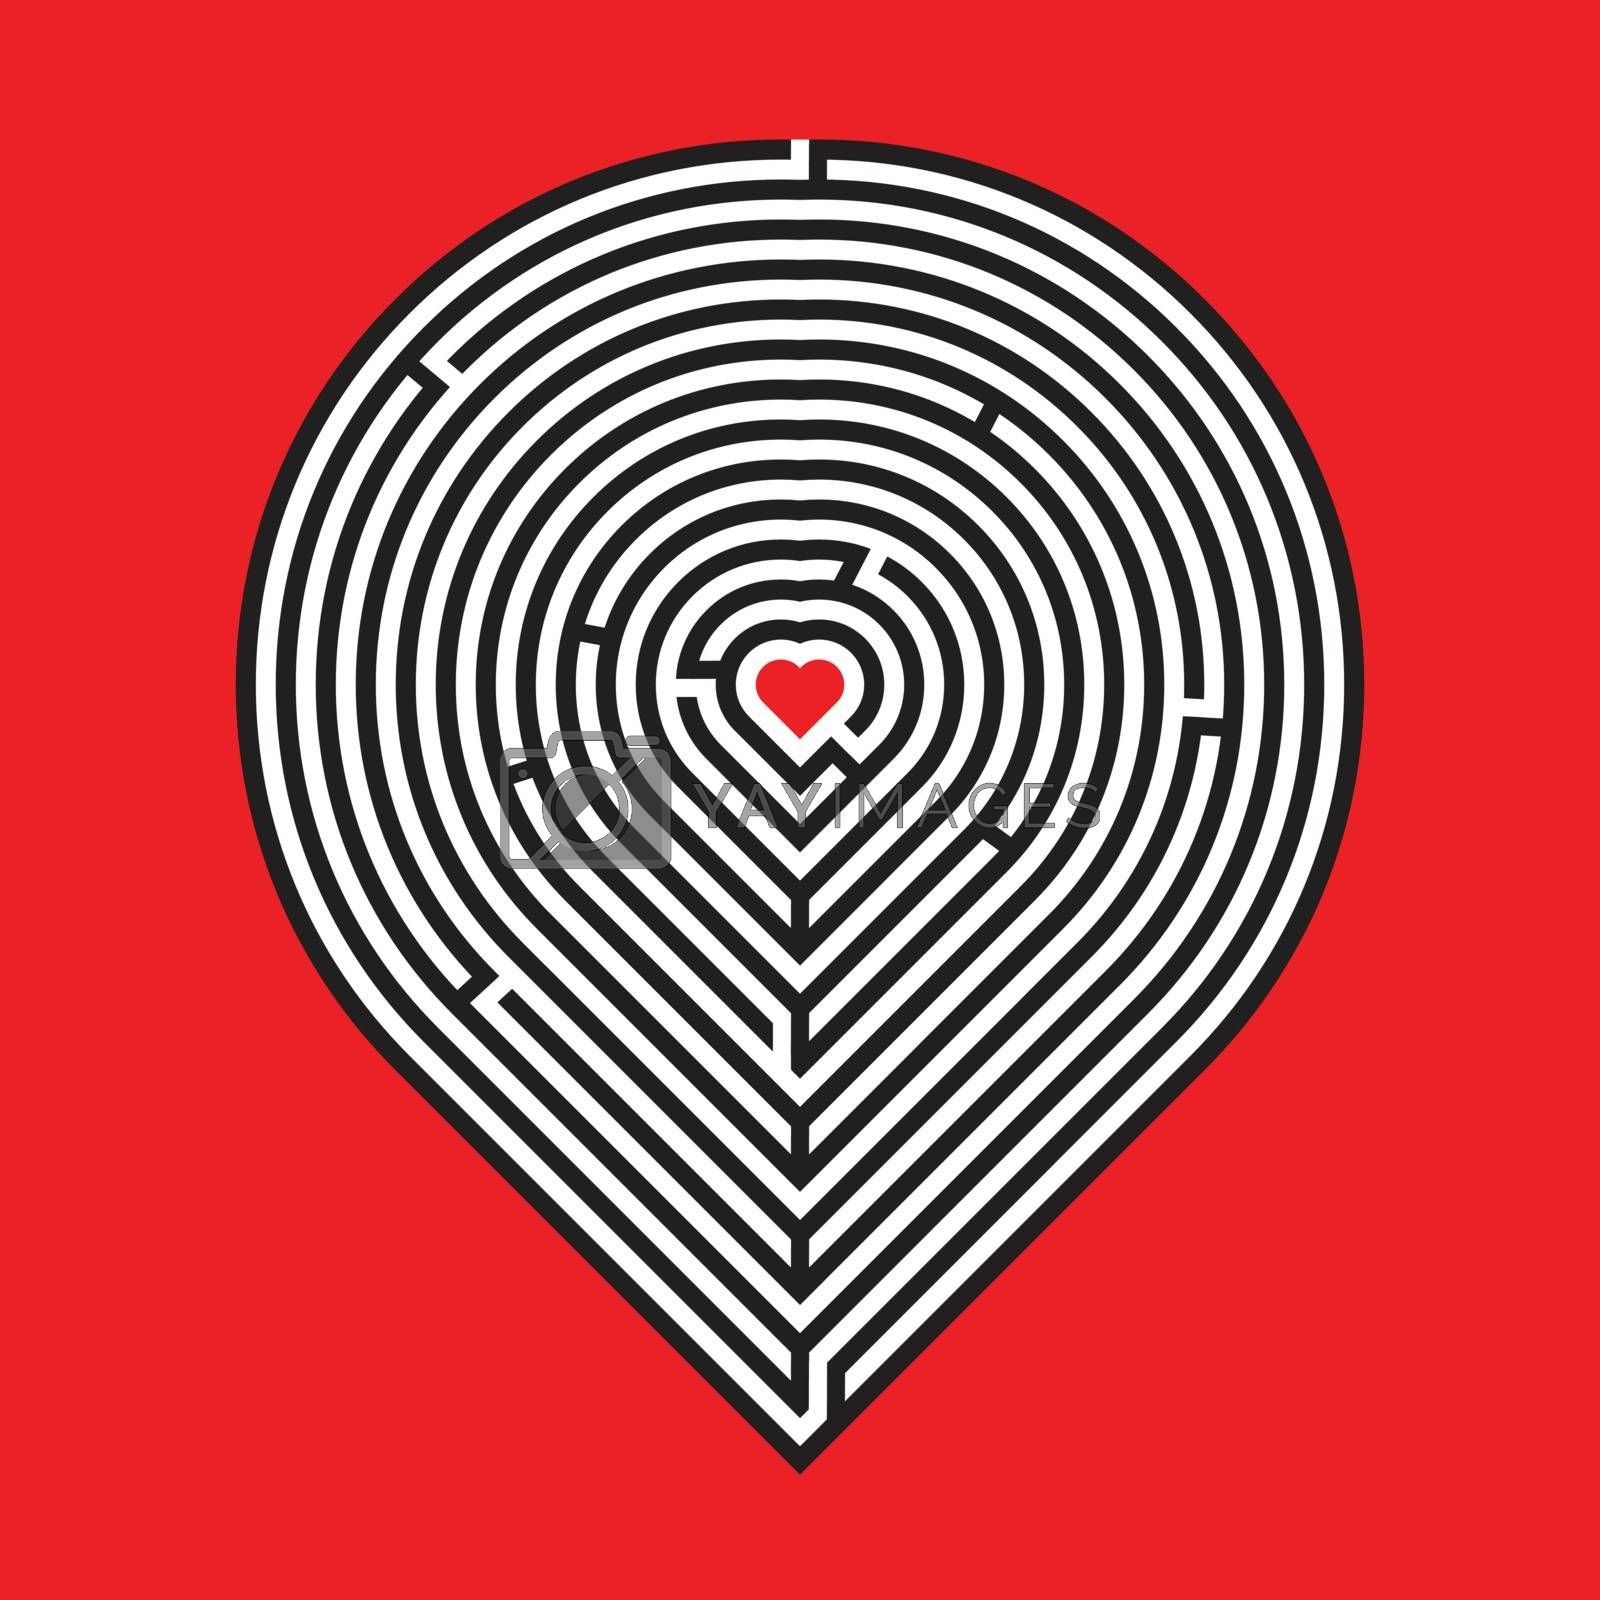 Royalty free image of heart maze by duntaro